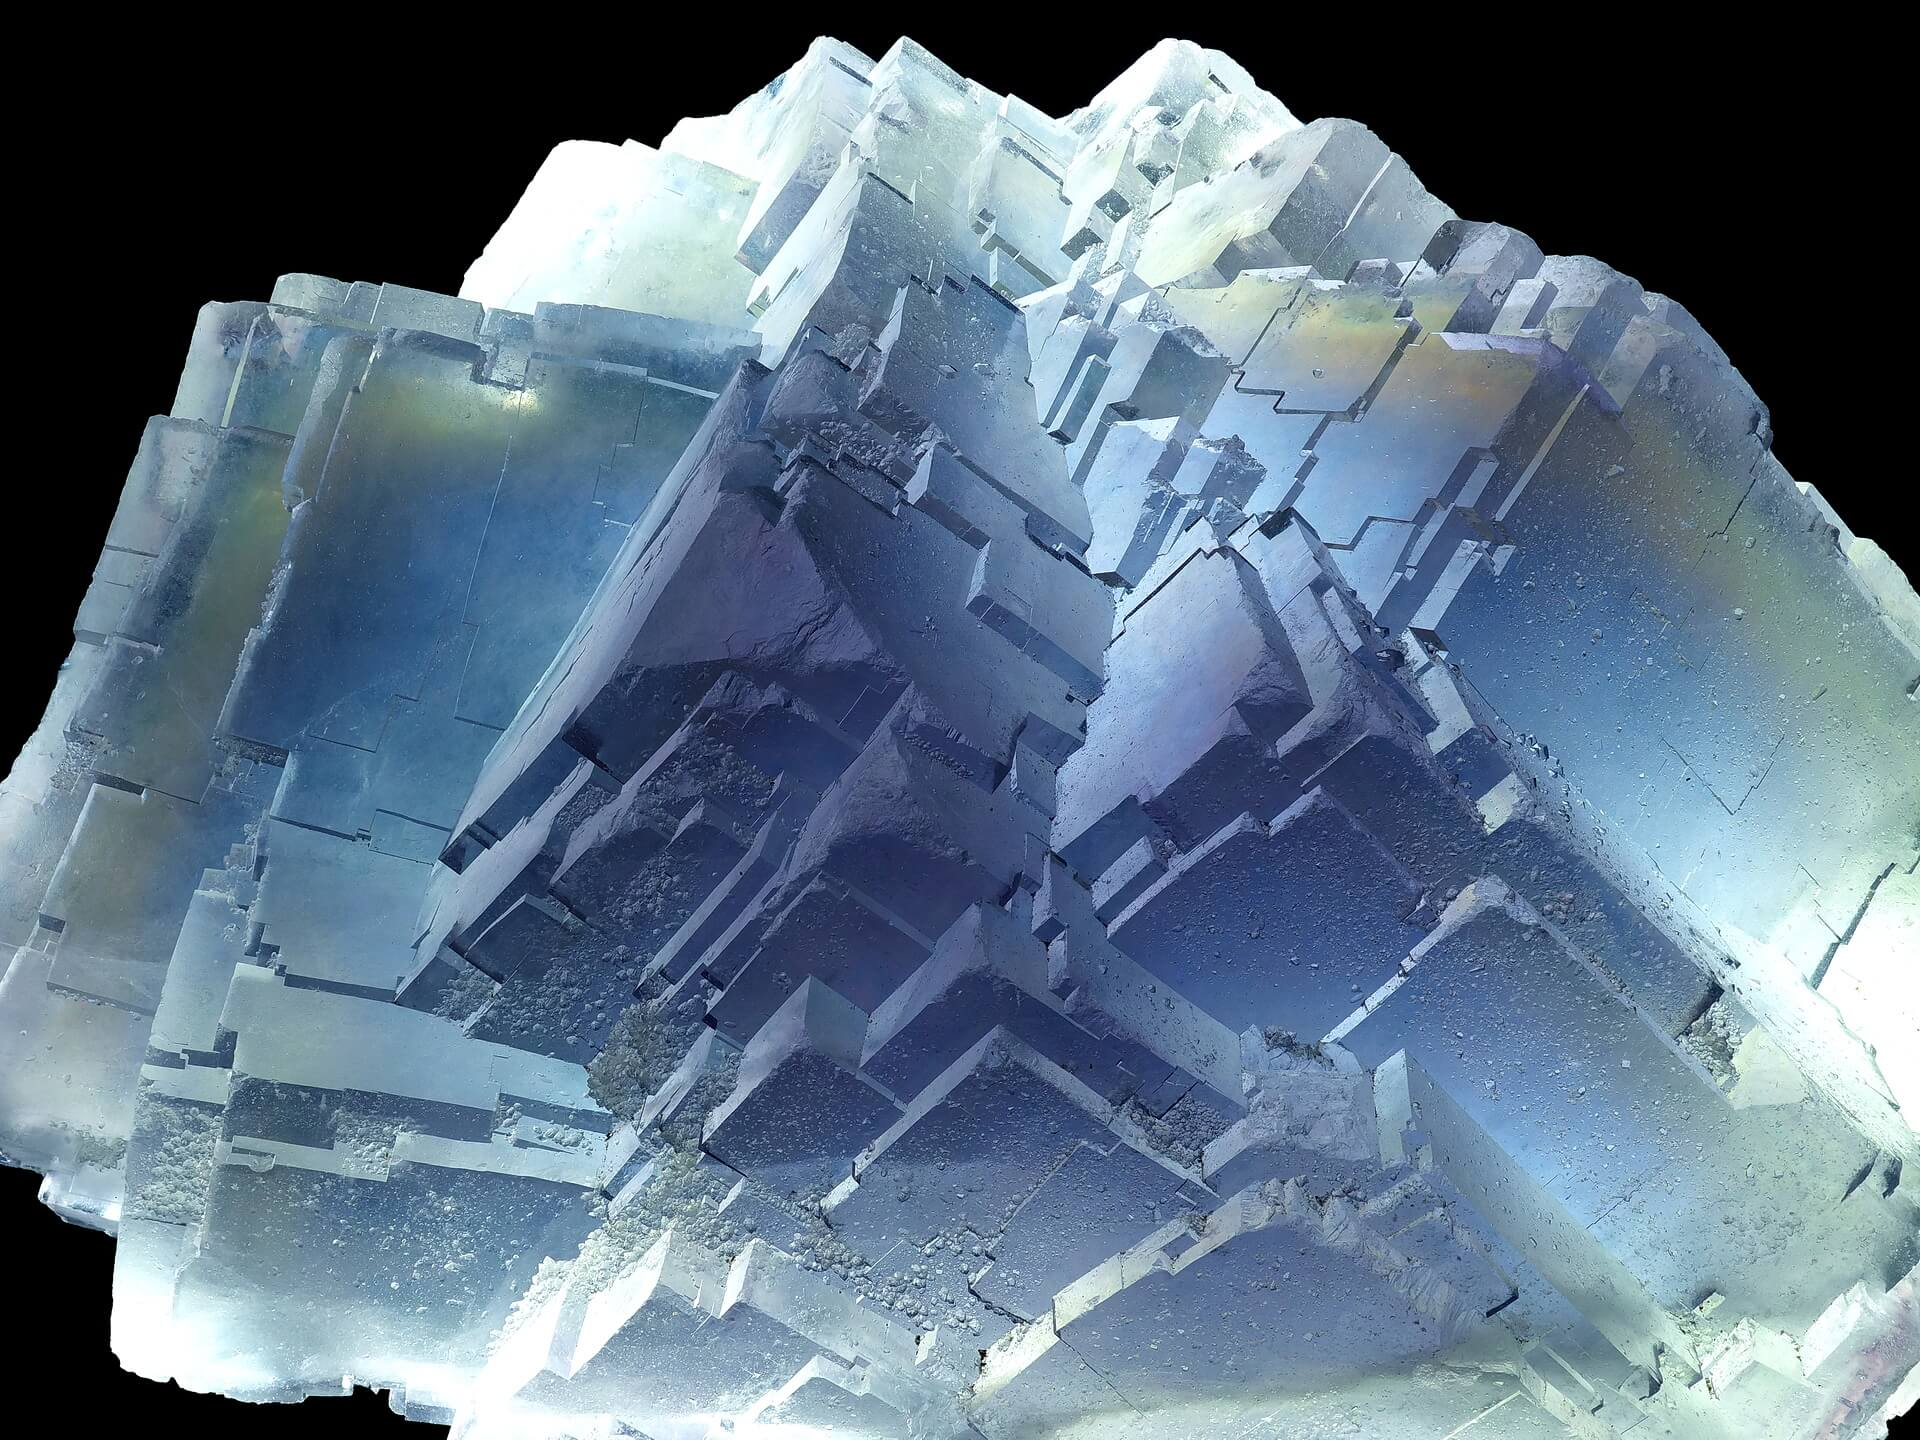 Interesting intersecting blue Fluorite cubes with micro Quartz crystals on some faces.